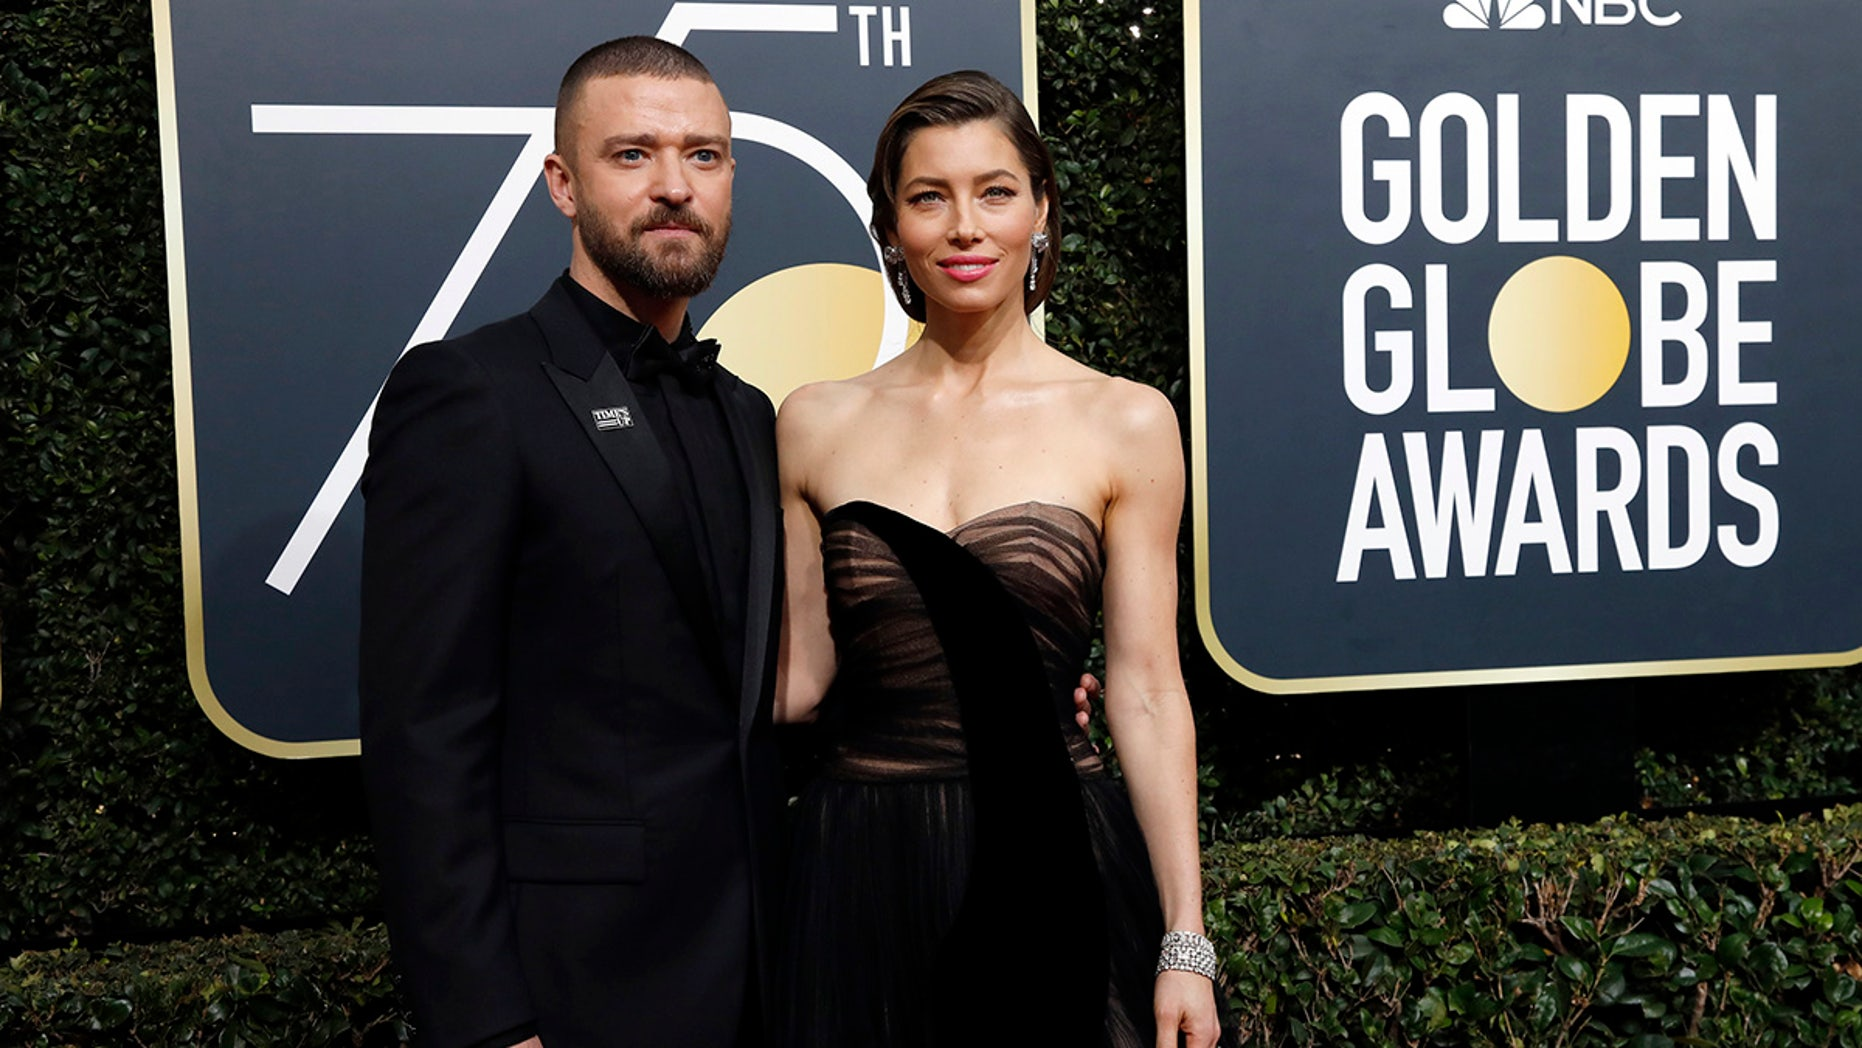 Jessica Biel, here with husband Justin Timberlake, said she's already broaching the topic of sex ed with their son Silas.